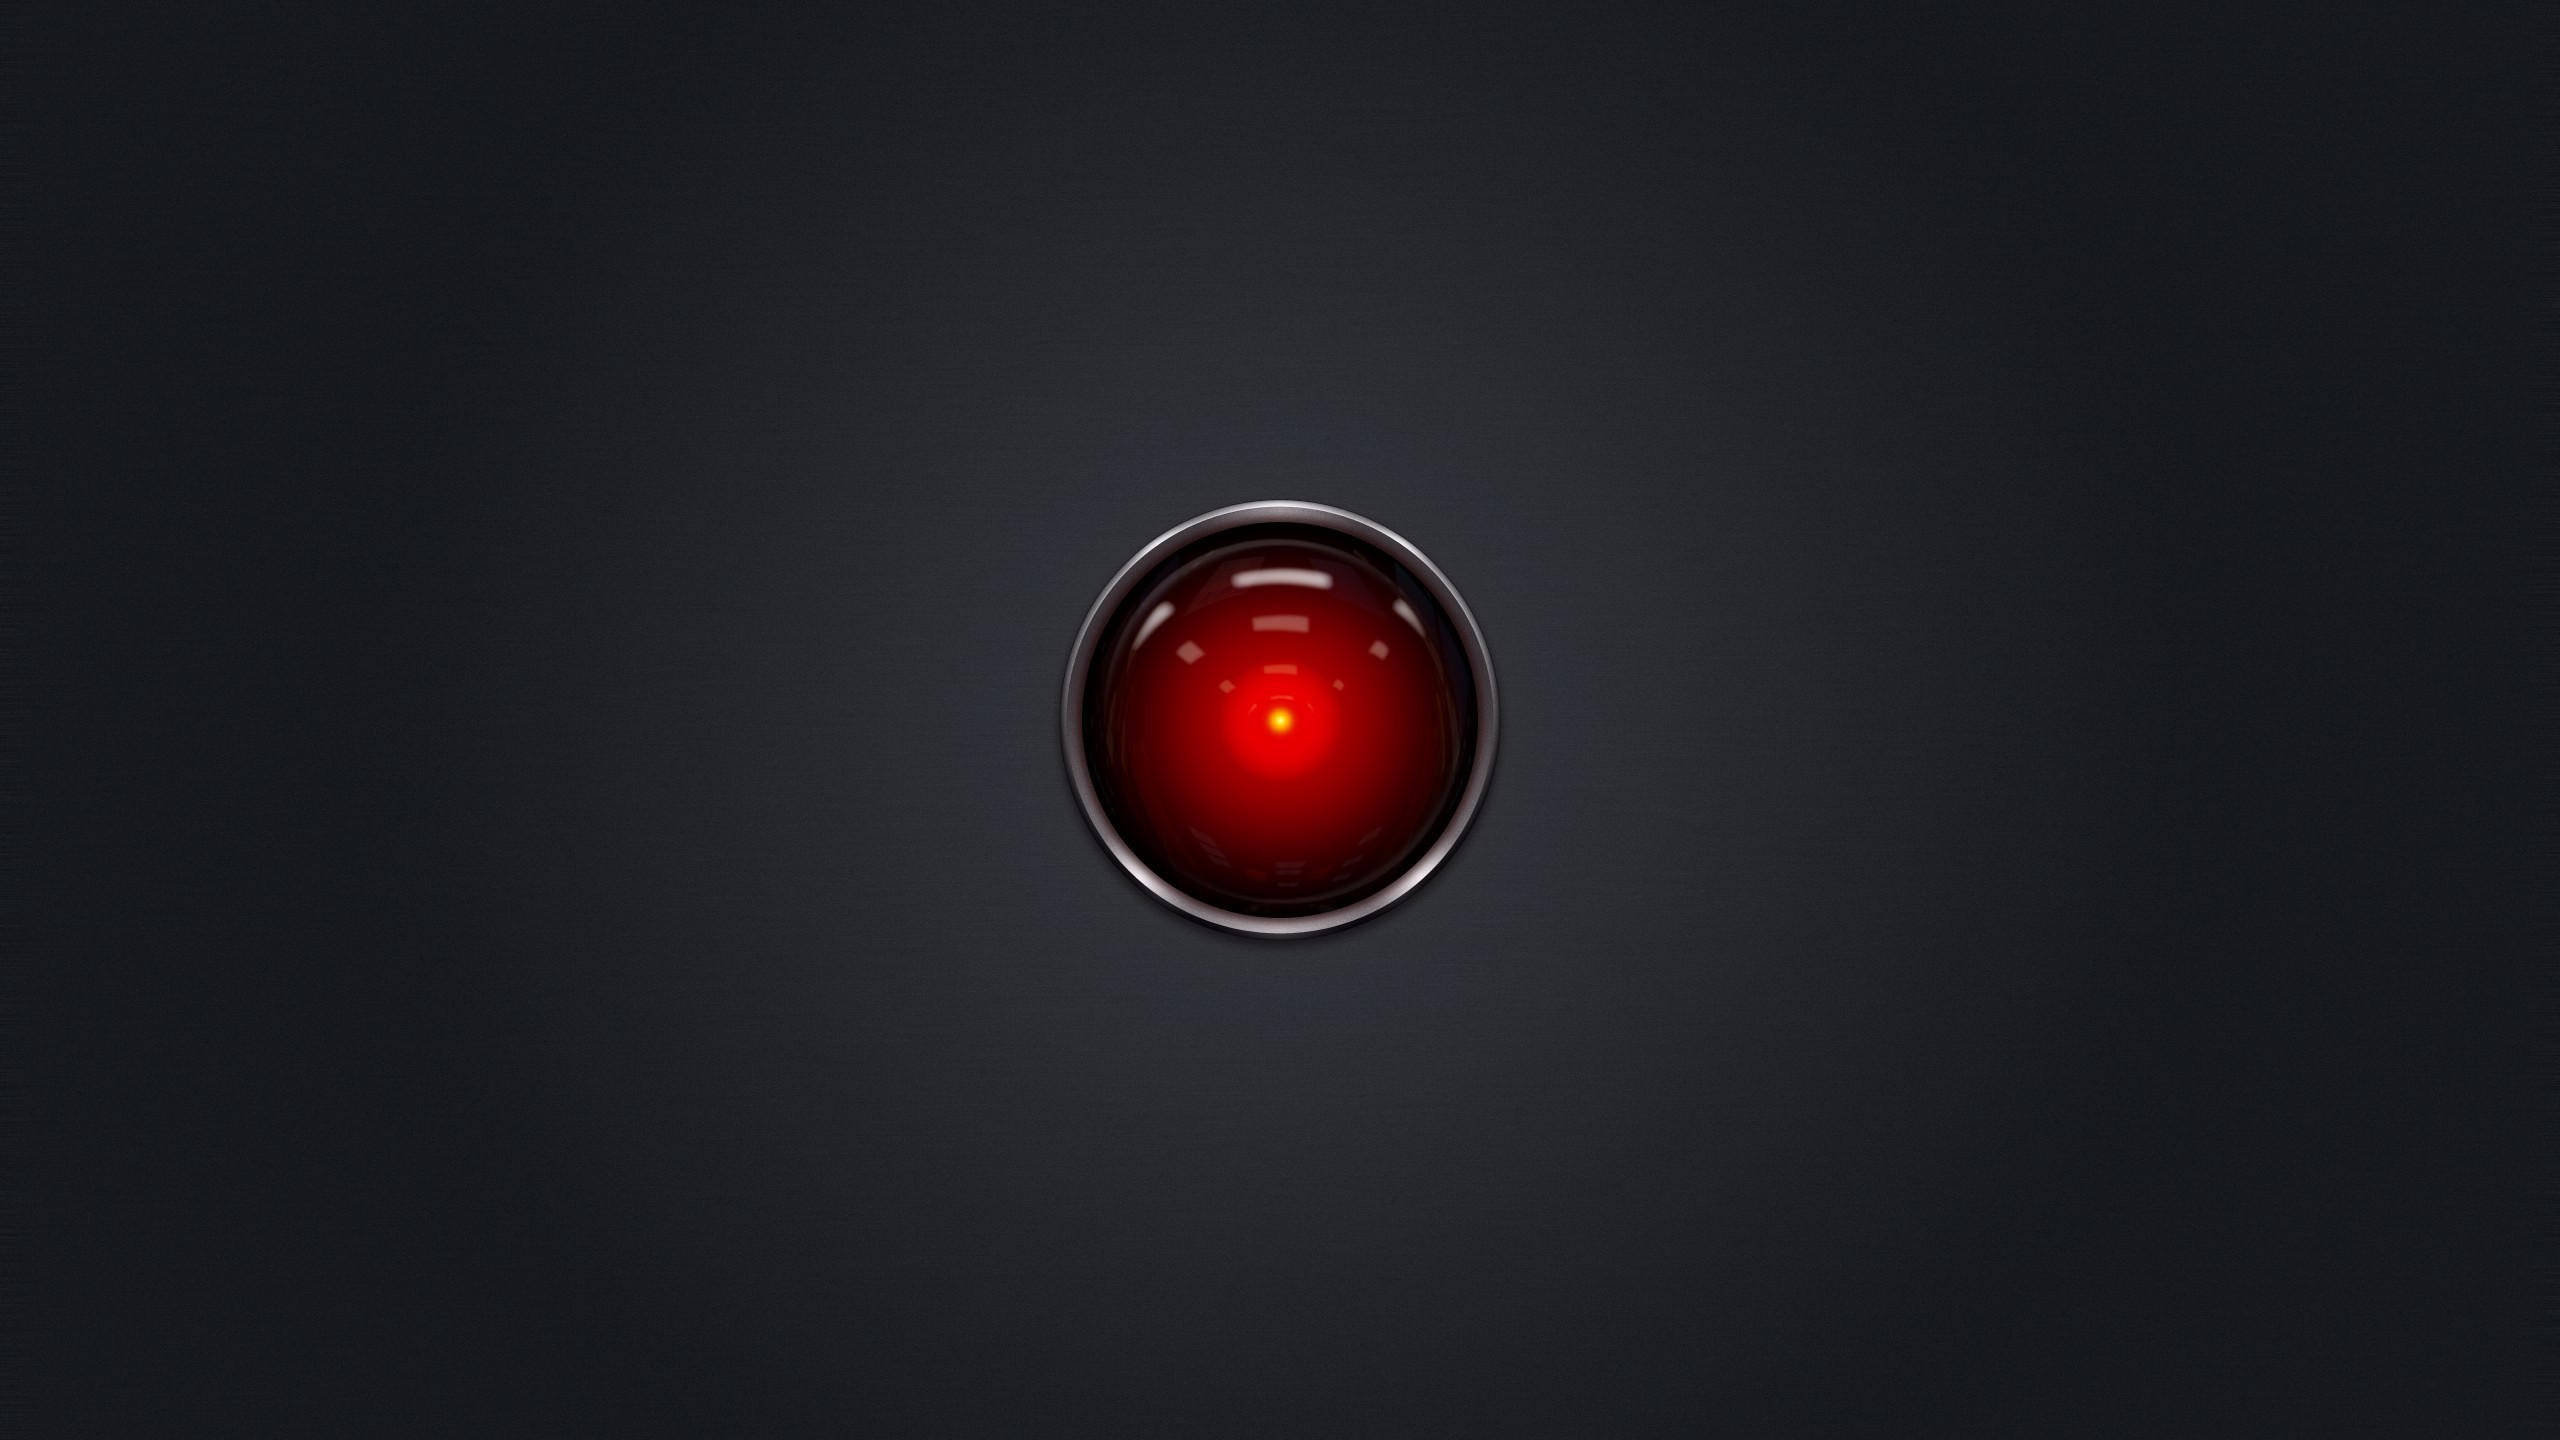 movies 2001 a space odyssey hal9000 wallpaper